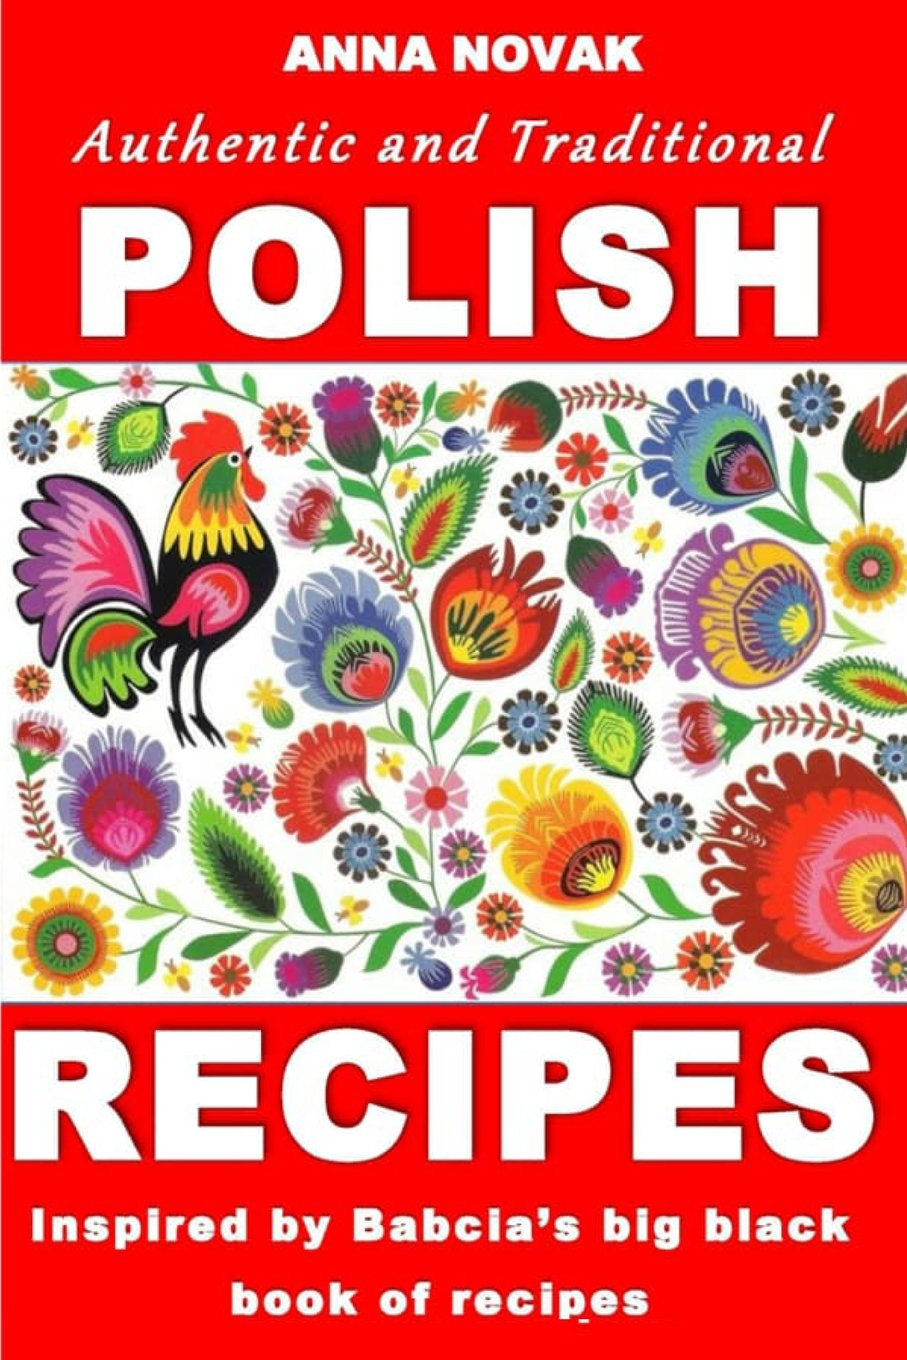 Authentic And Traditional Polish Recipes  Inspired By Babcia's Big Black Book Of Recipes